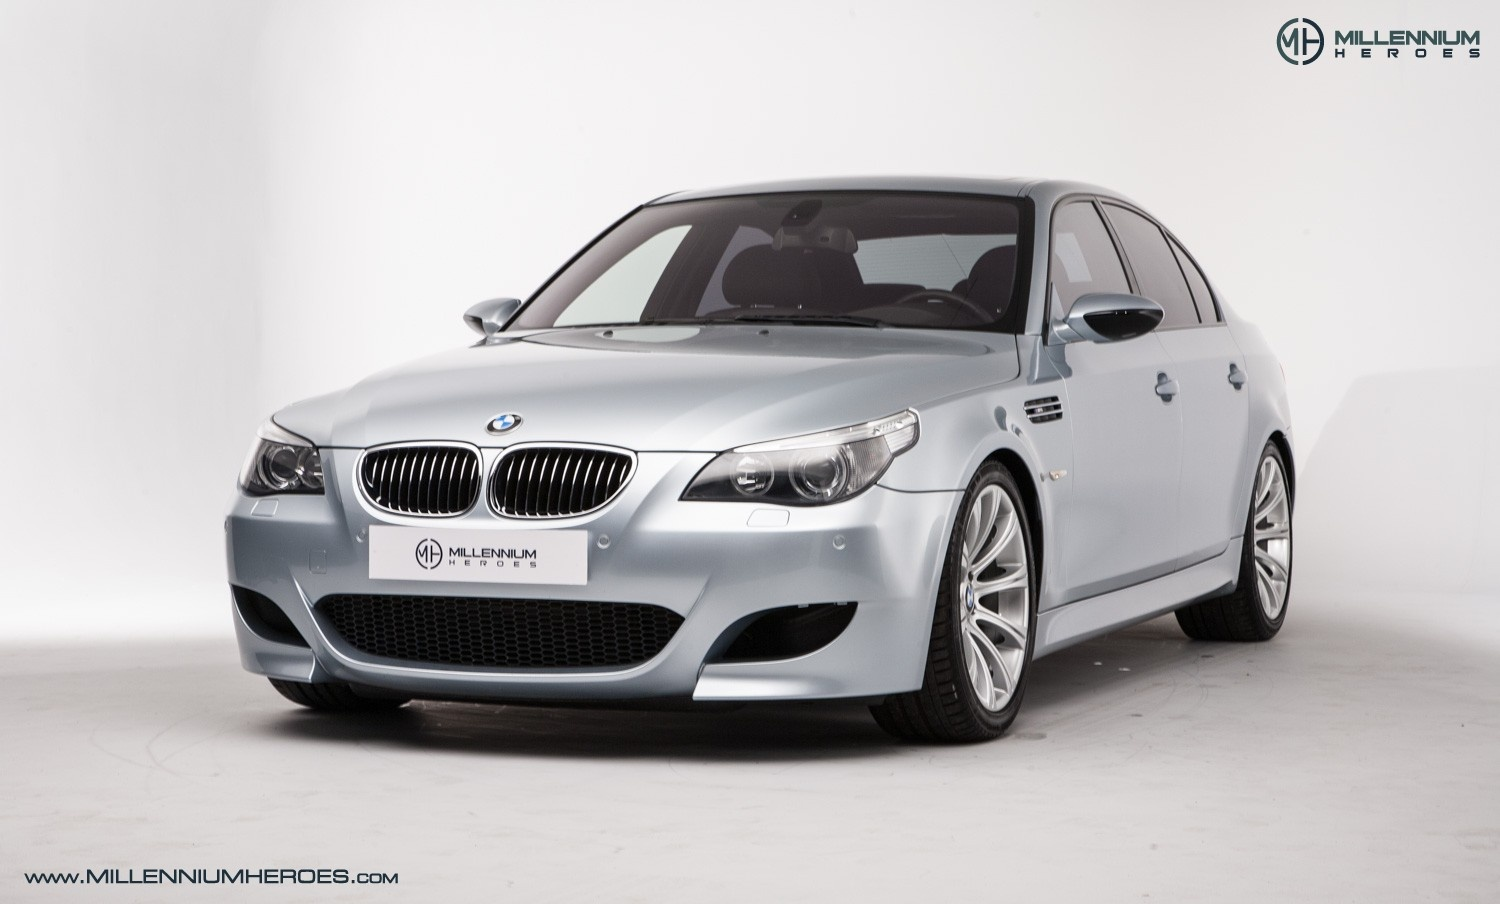 2006 Bmw M5 Sparkling Silverstone Metallic M5 With Only 27k Miles Lhd Classic Driver Market